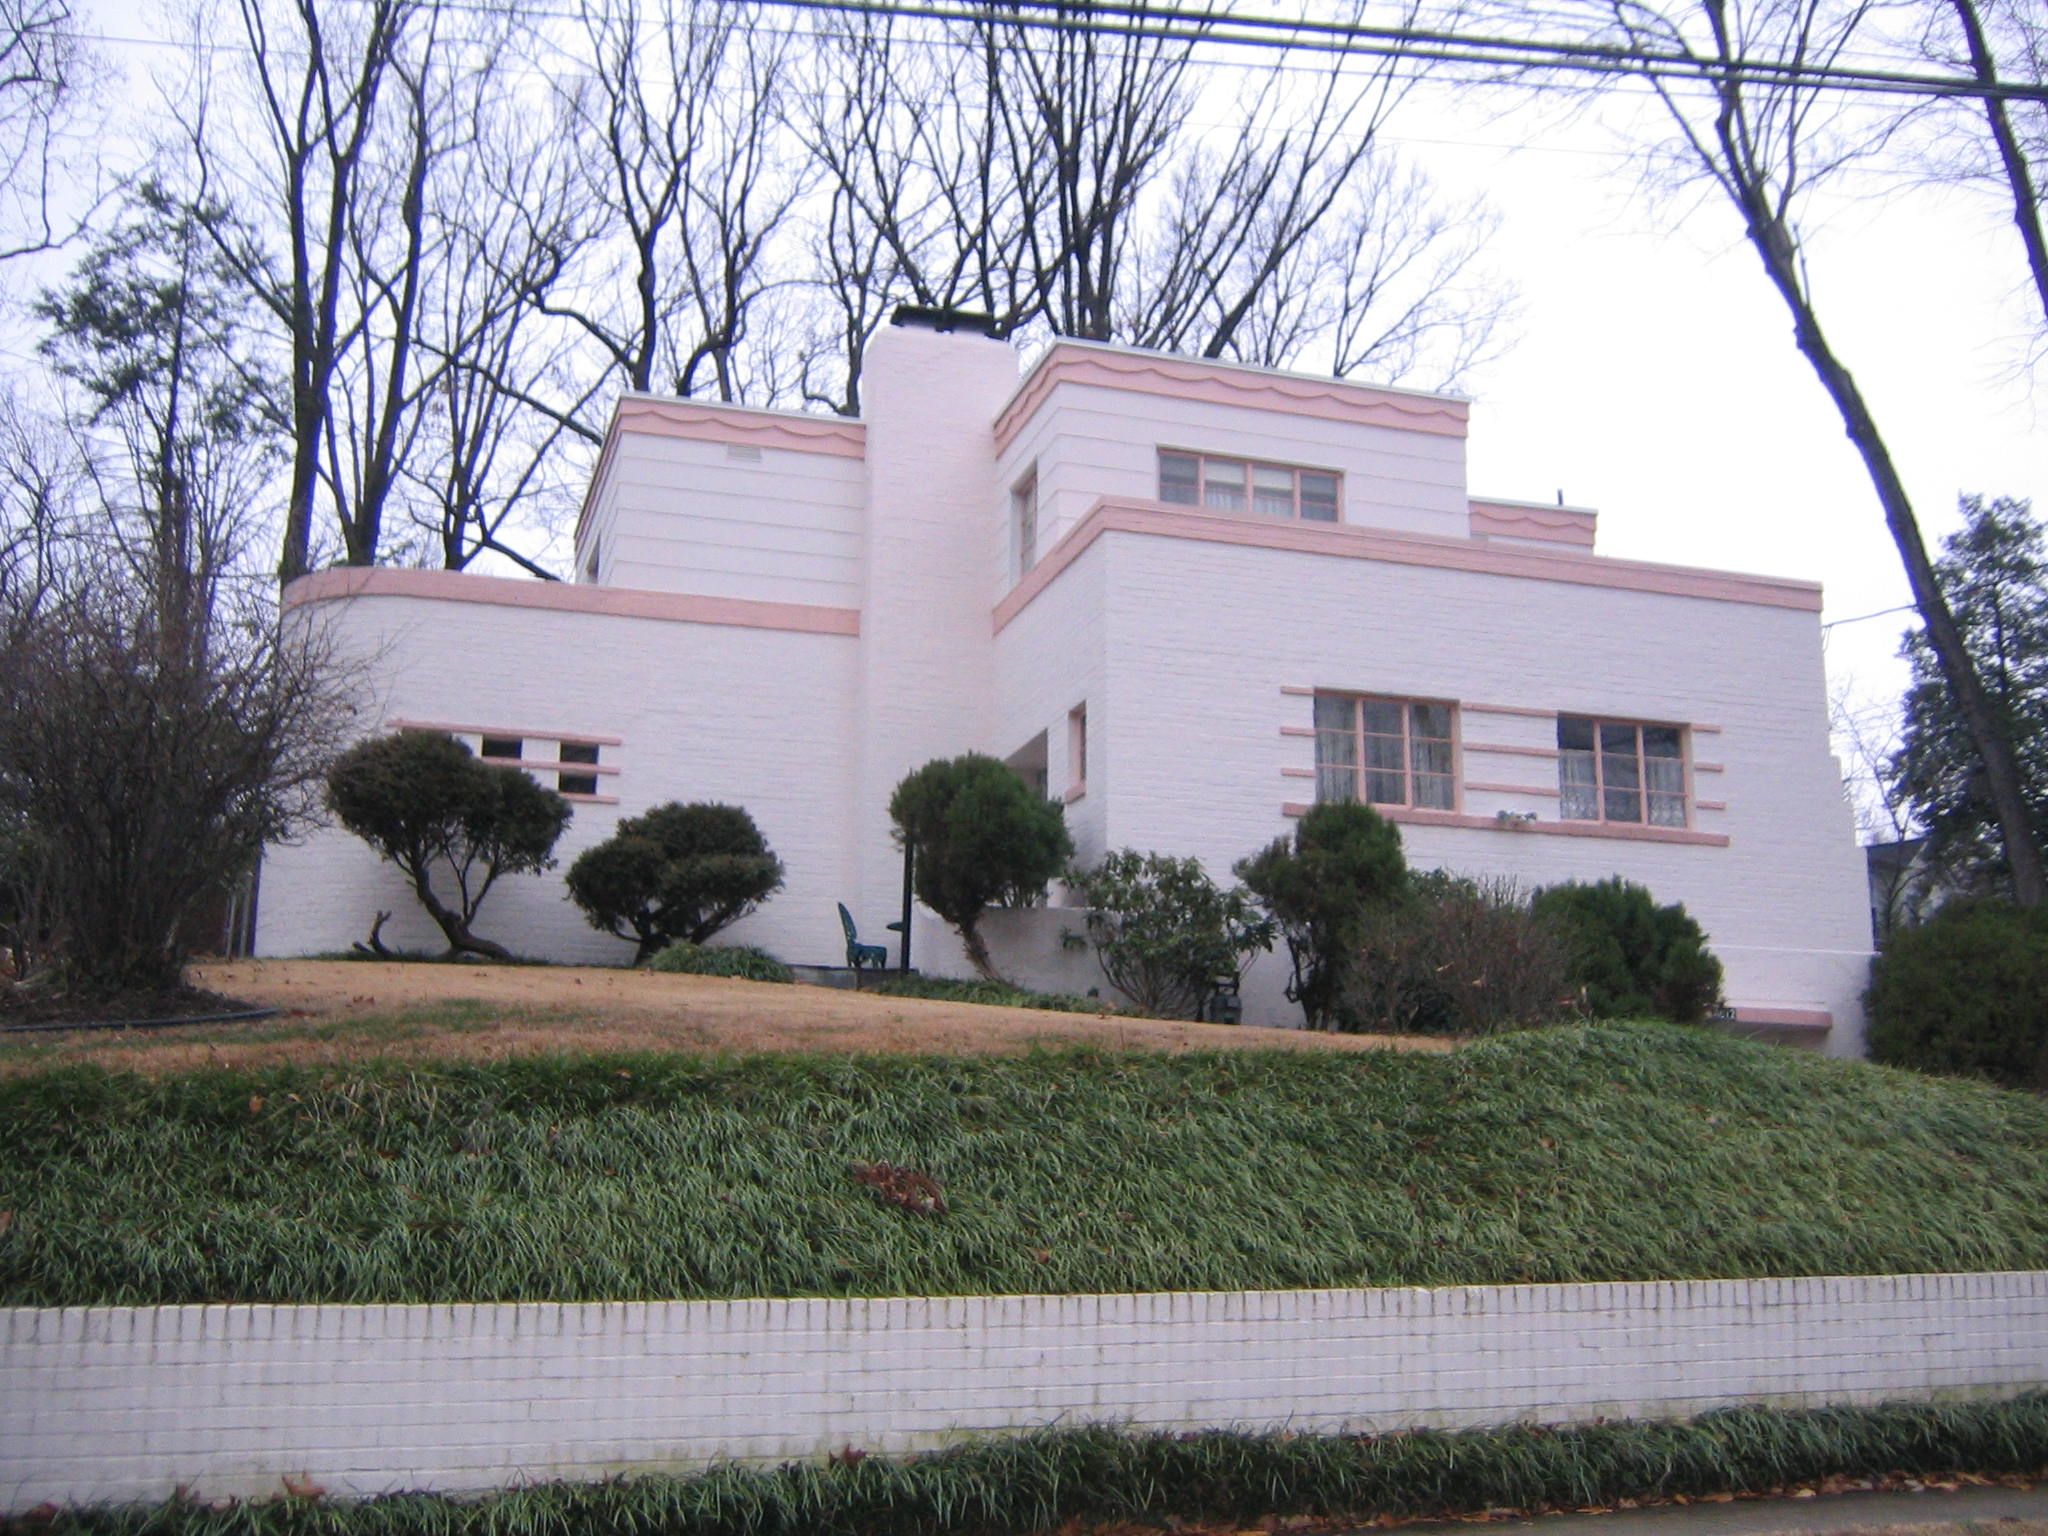 Streamline Moderne Houses in Arlington County MPD